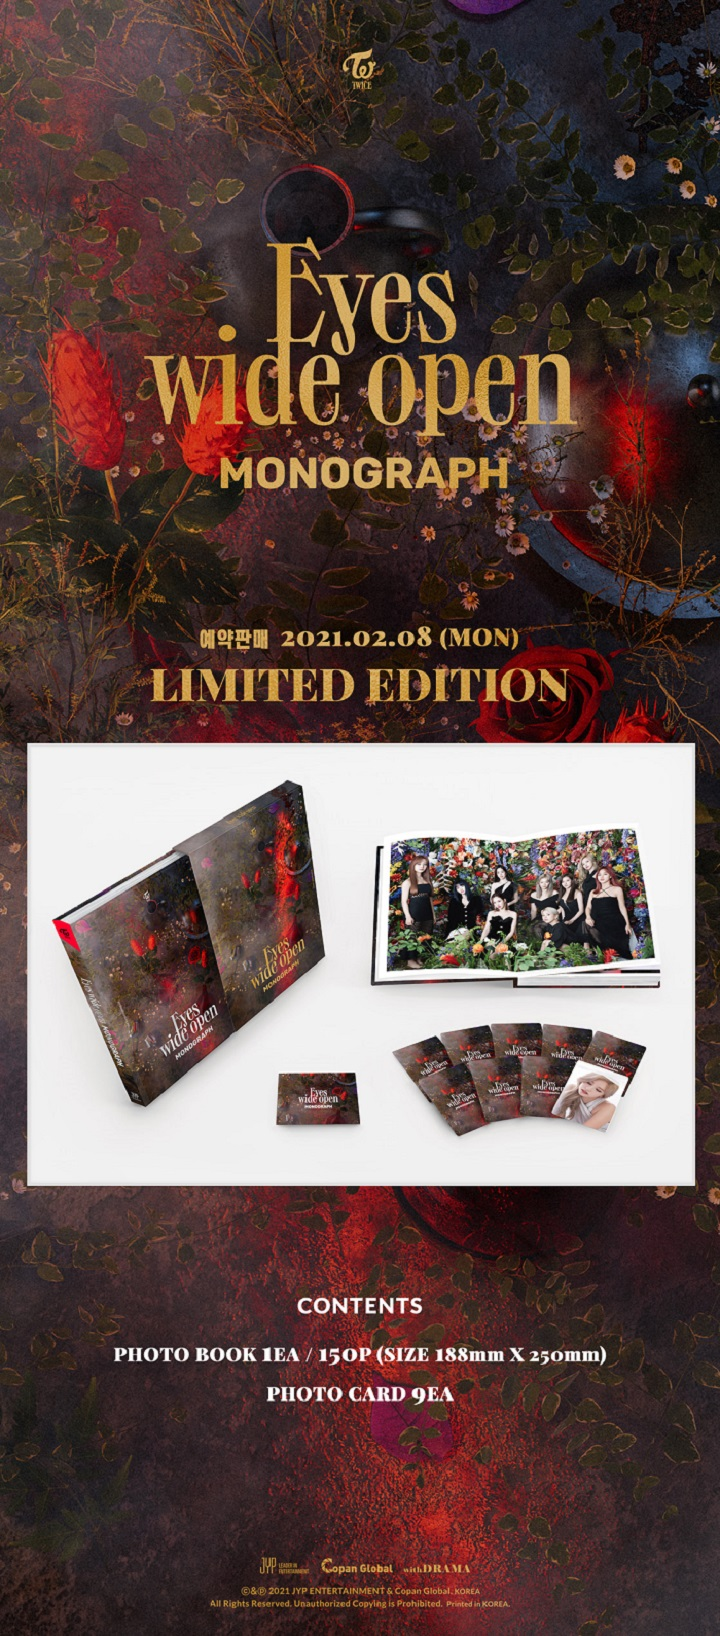 twice-eyes-wide-open-monograph-kstarplanet-malaysia.jpg